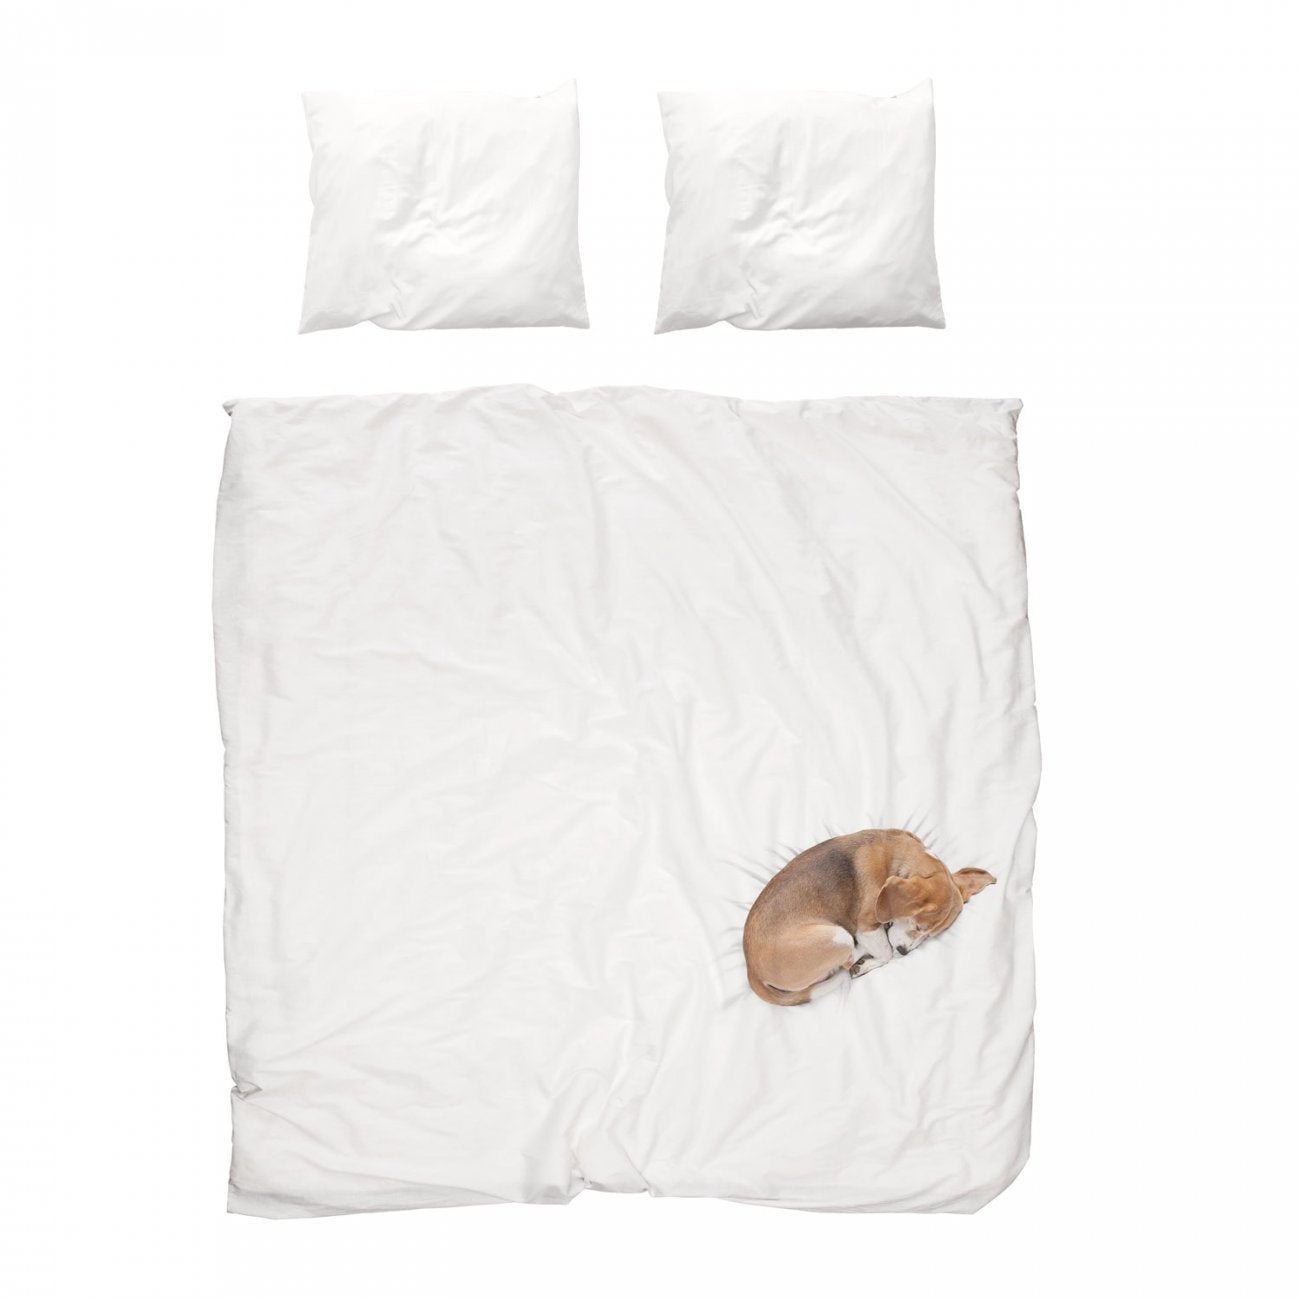 BOB DUVET COVER. | SNURK BEDDING